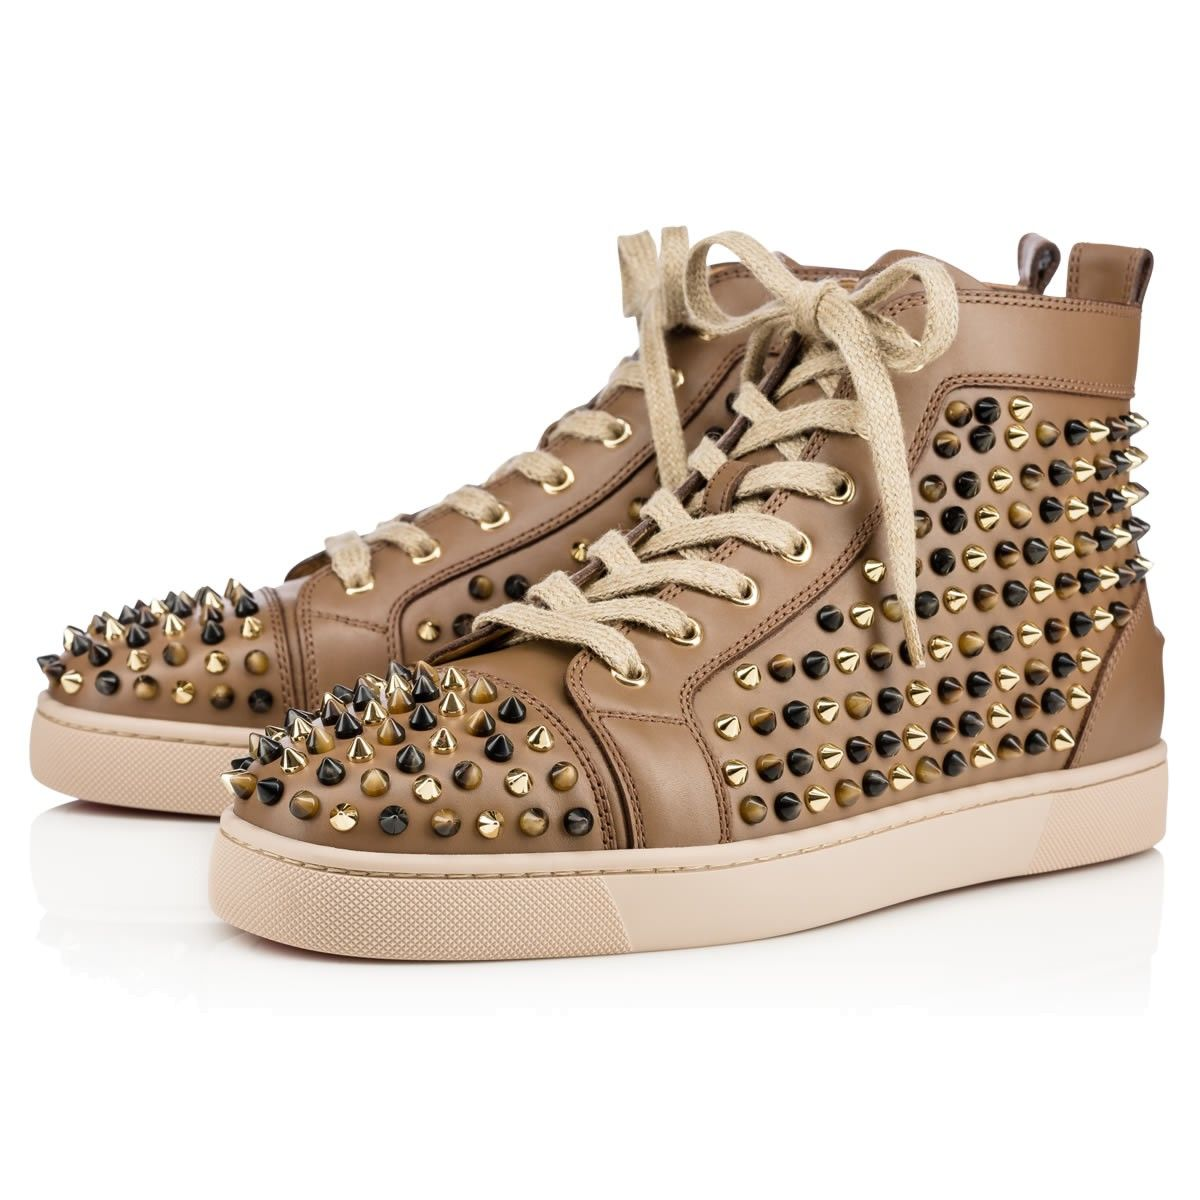 Louboutin Sneakers Spikes